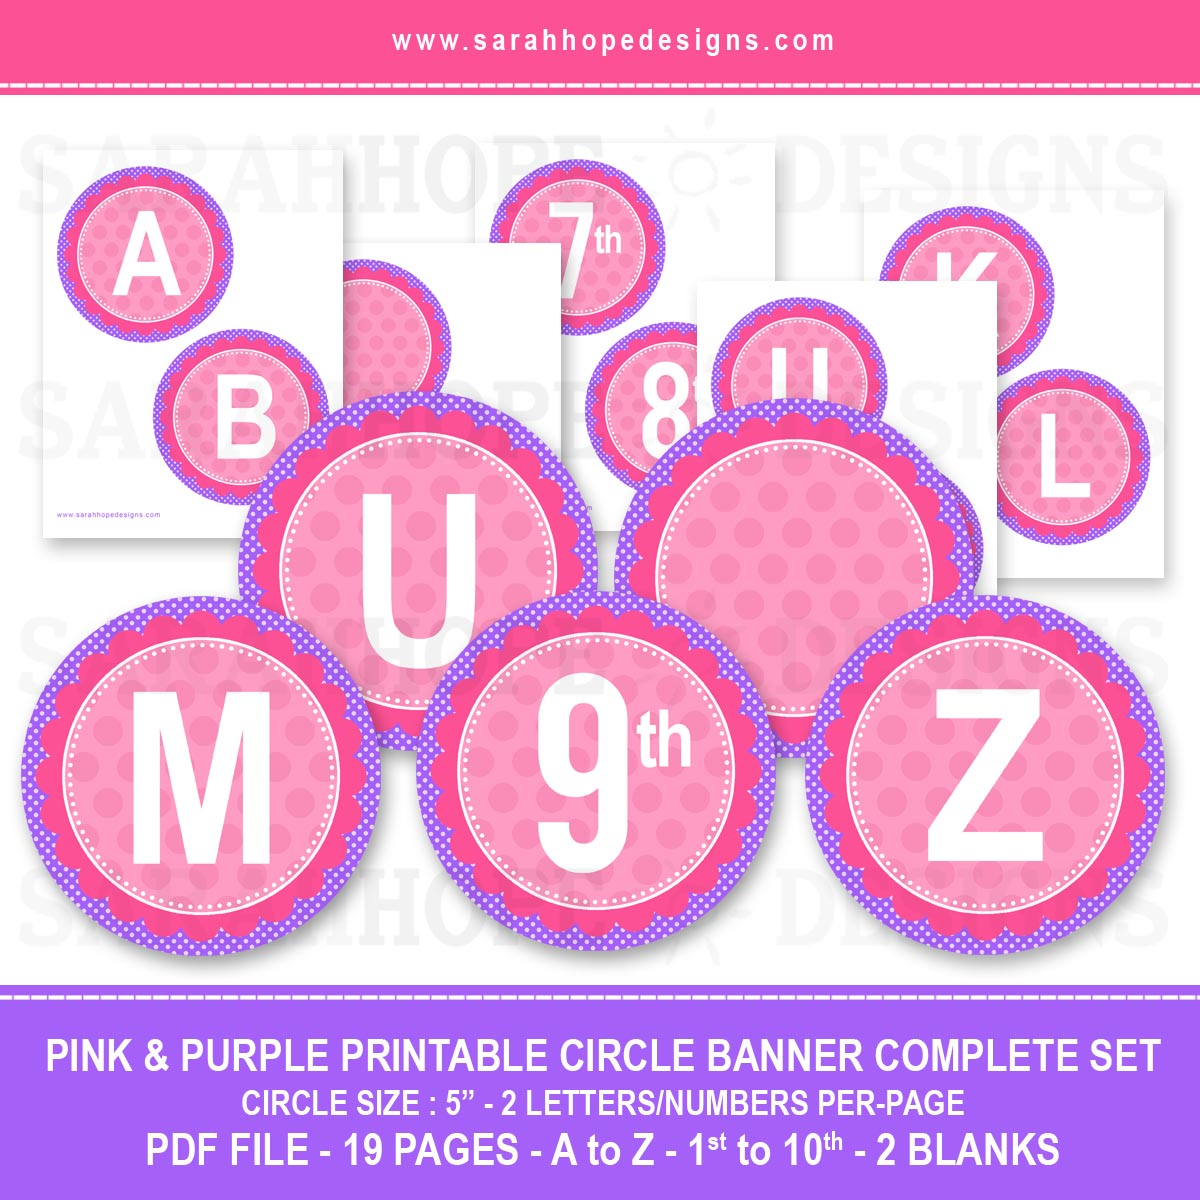 photo relating to Happy Birthday Printable Letters named Spell Out One thing With these kinds of Totally free Alphabet Circle Banners